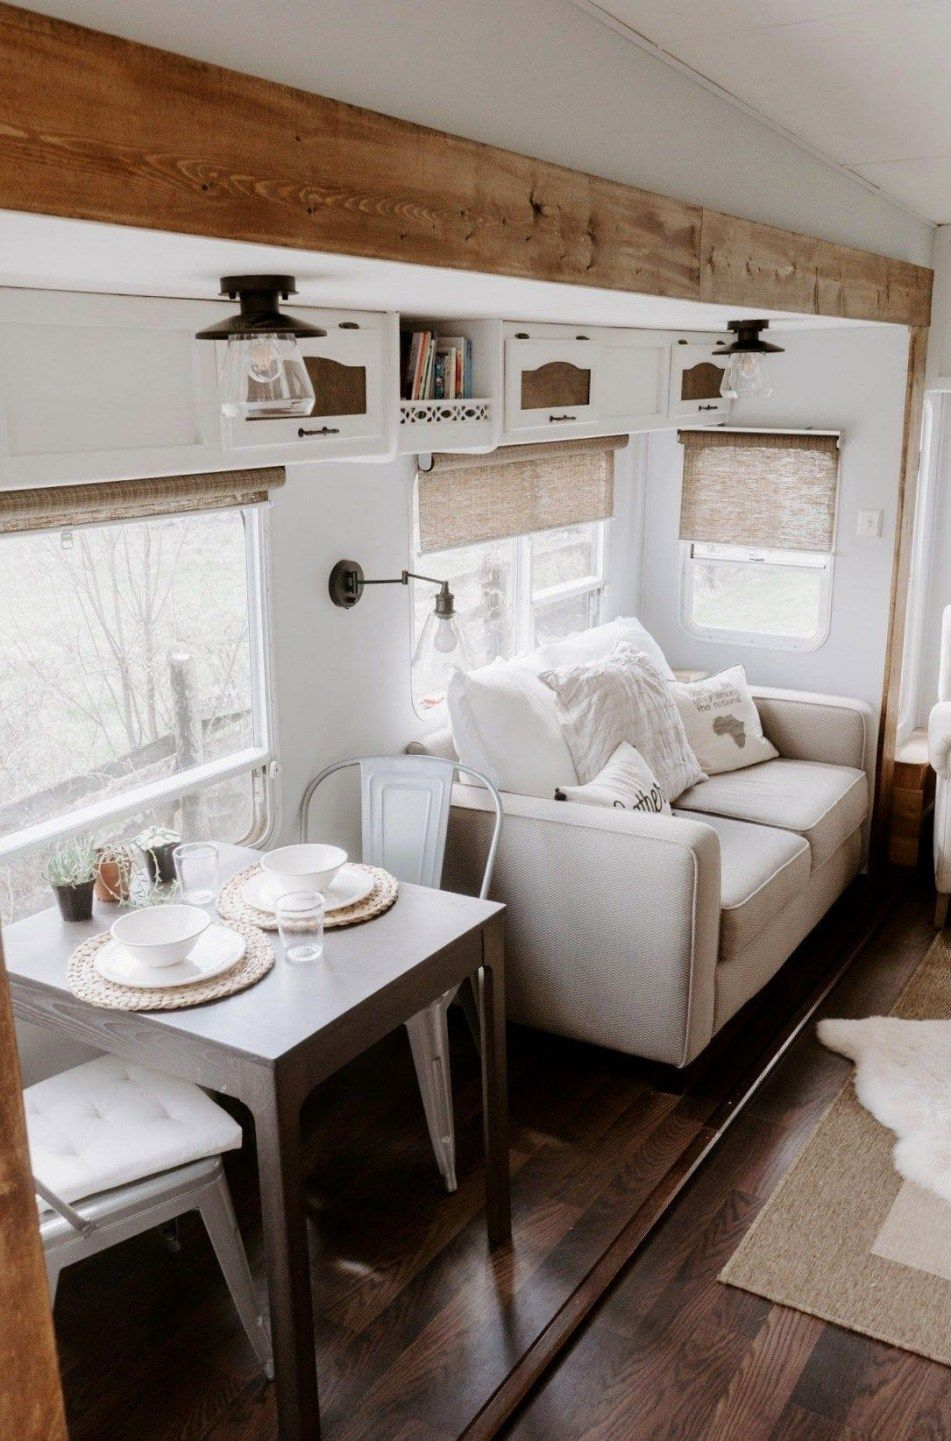 44 Cool and Dramatic Camper Makeover ideas for Full Time